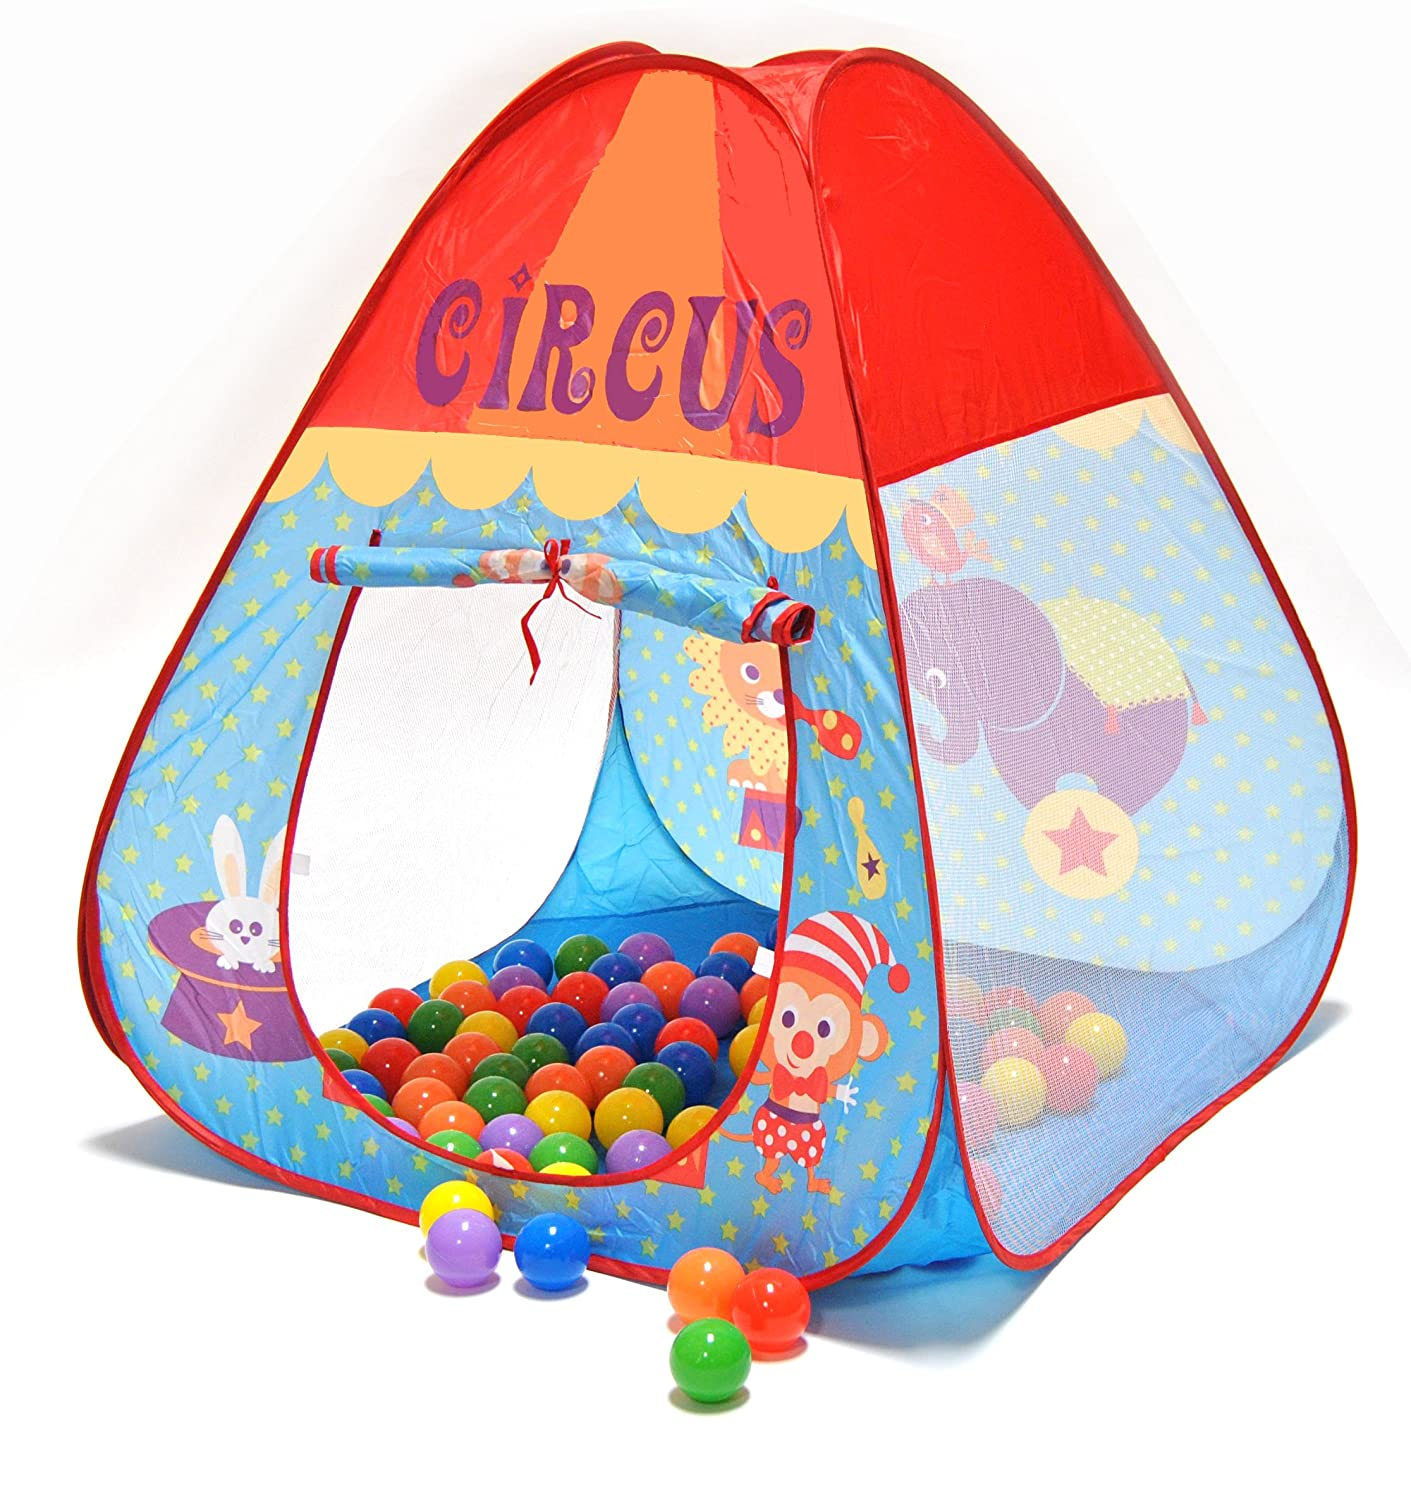 Circus Theme Twist Play Tent House w/ Safety Meshing for Child Visibility & Tote Bag